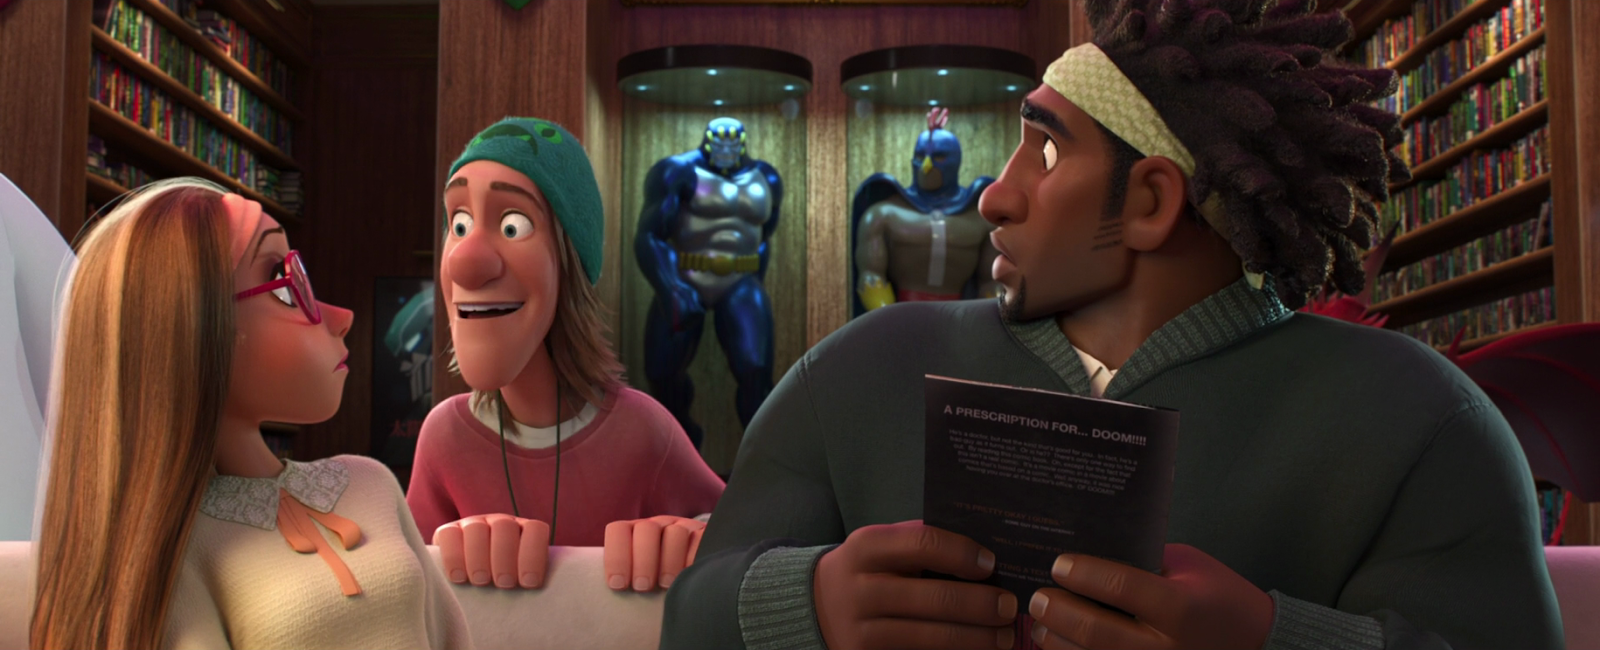 Big Hero 6 And Capturing That Old Marvel Magic By Finding The Wrong Words Medium